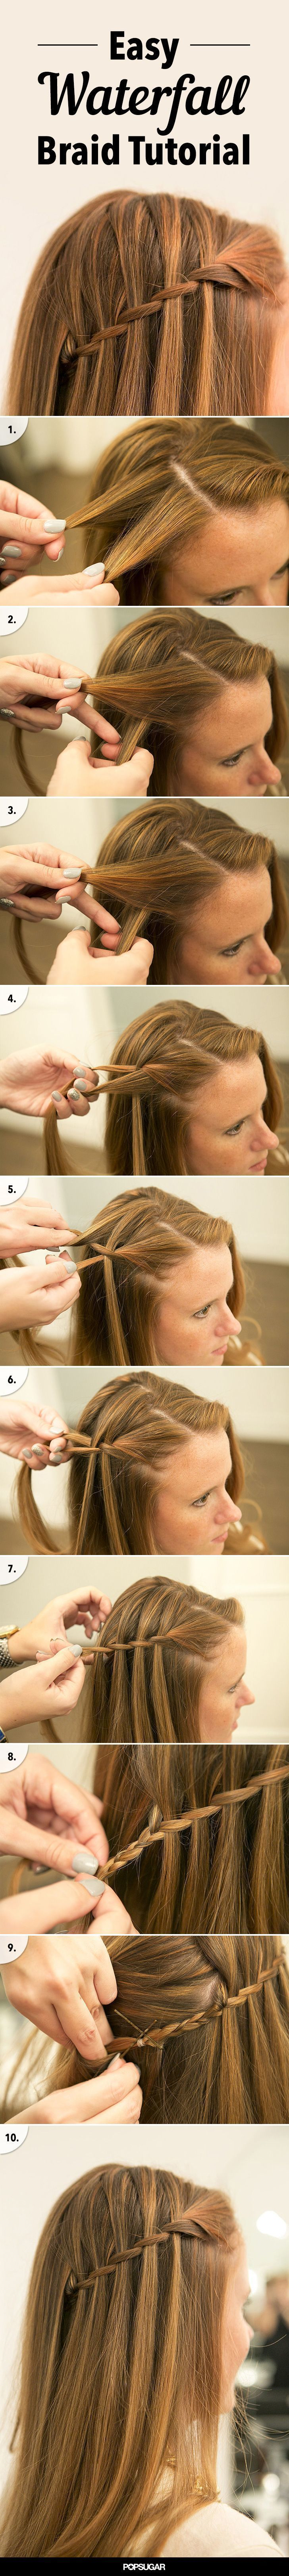 155 best Hair ideas images on Pinterest